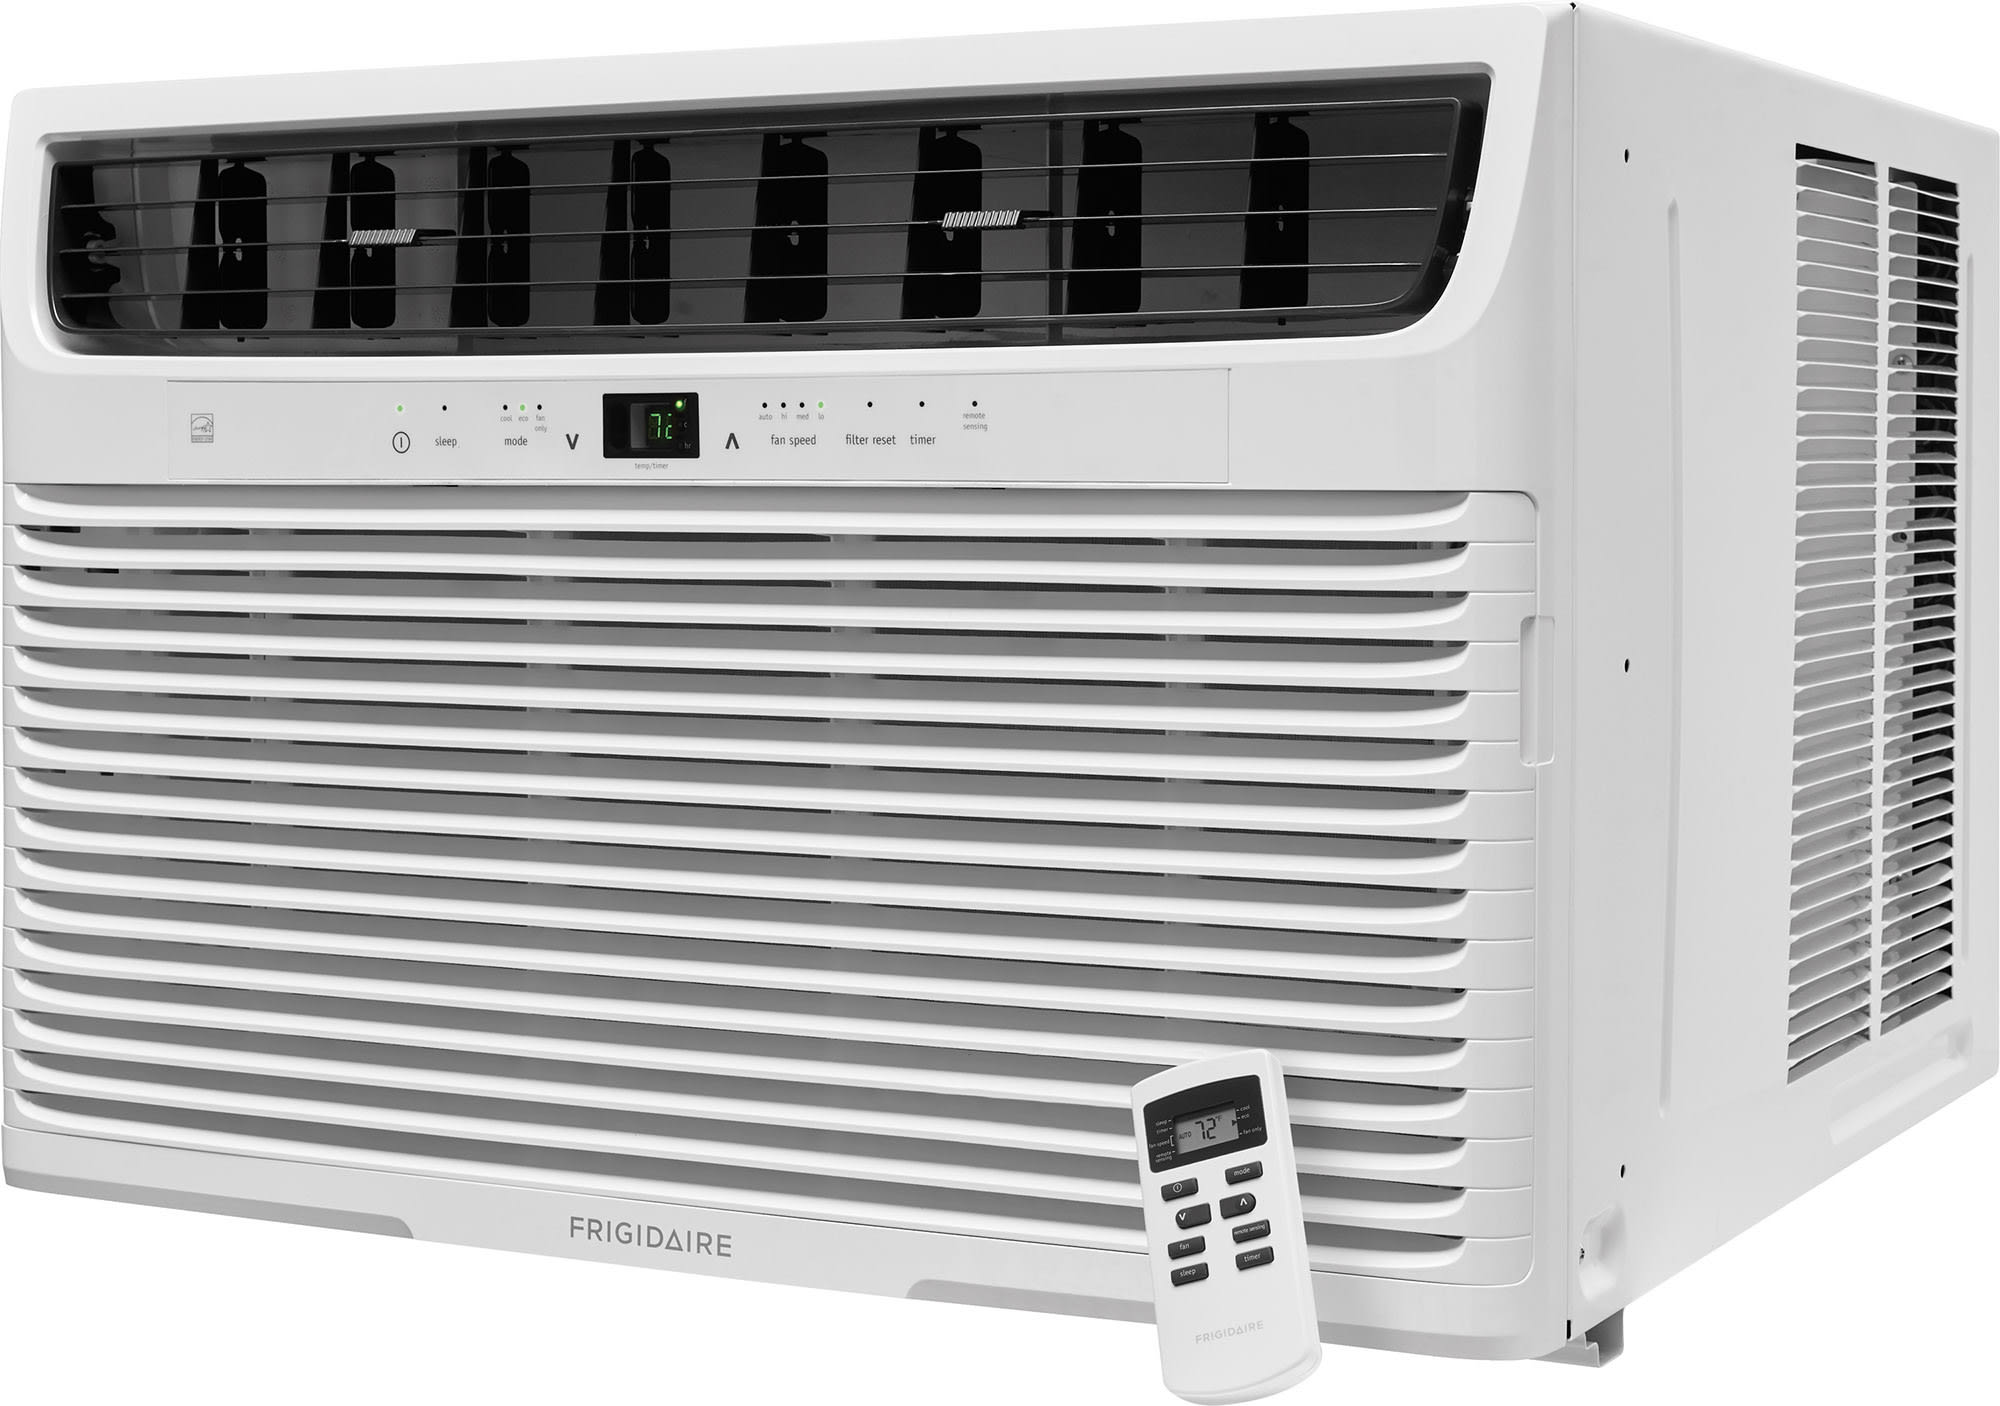 Frigidaire Ffre2233u2 22 000 Btu Room Air Conditioner With